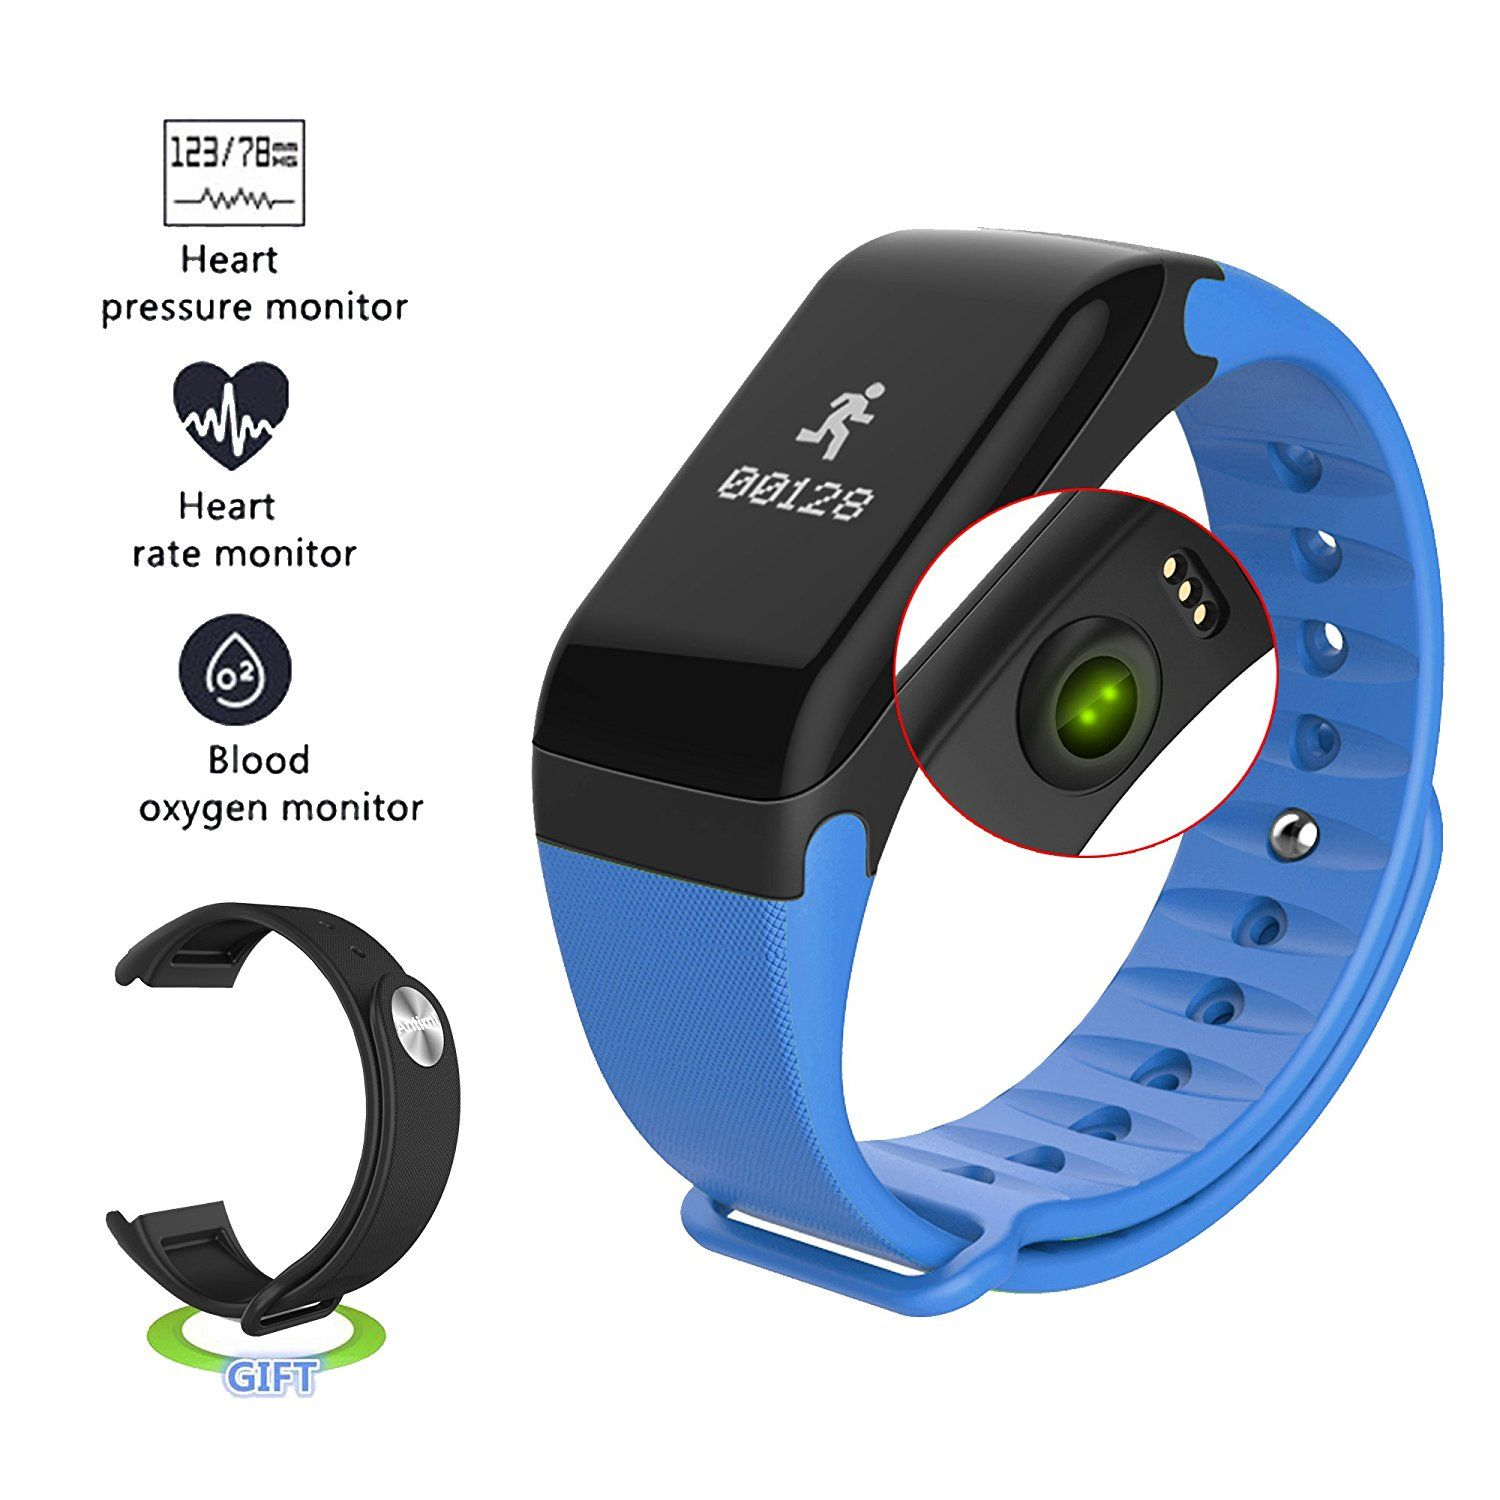 tracker mi ecg smart activity blood fitness pressure monitor item heart wristband rate bracelet watches pk